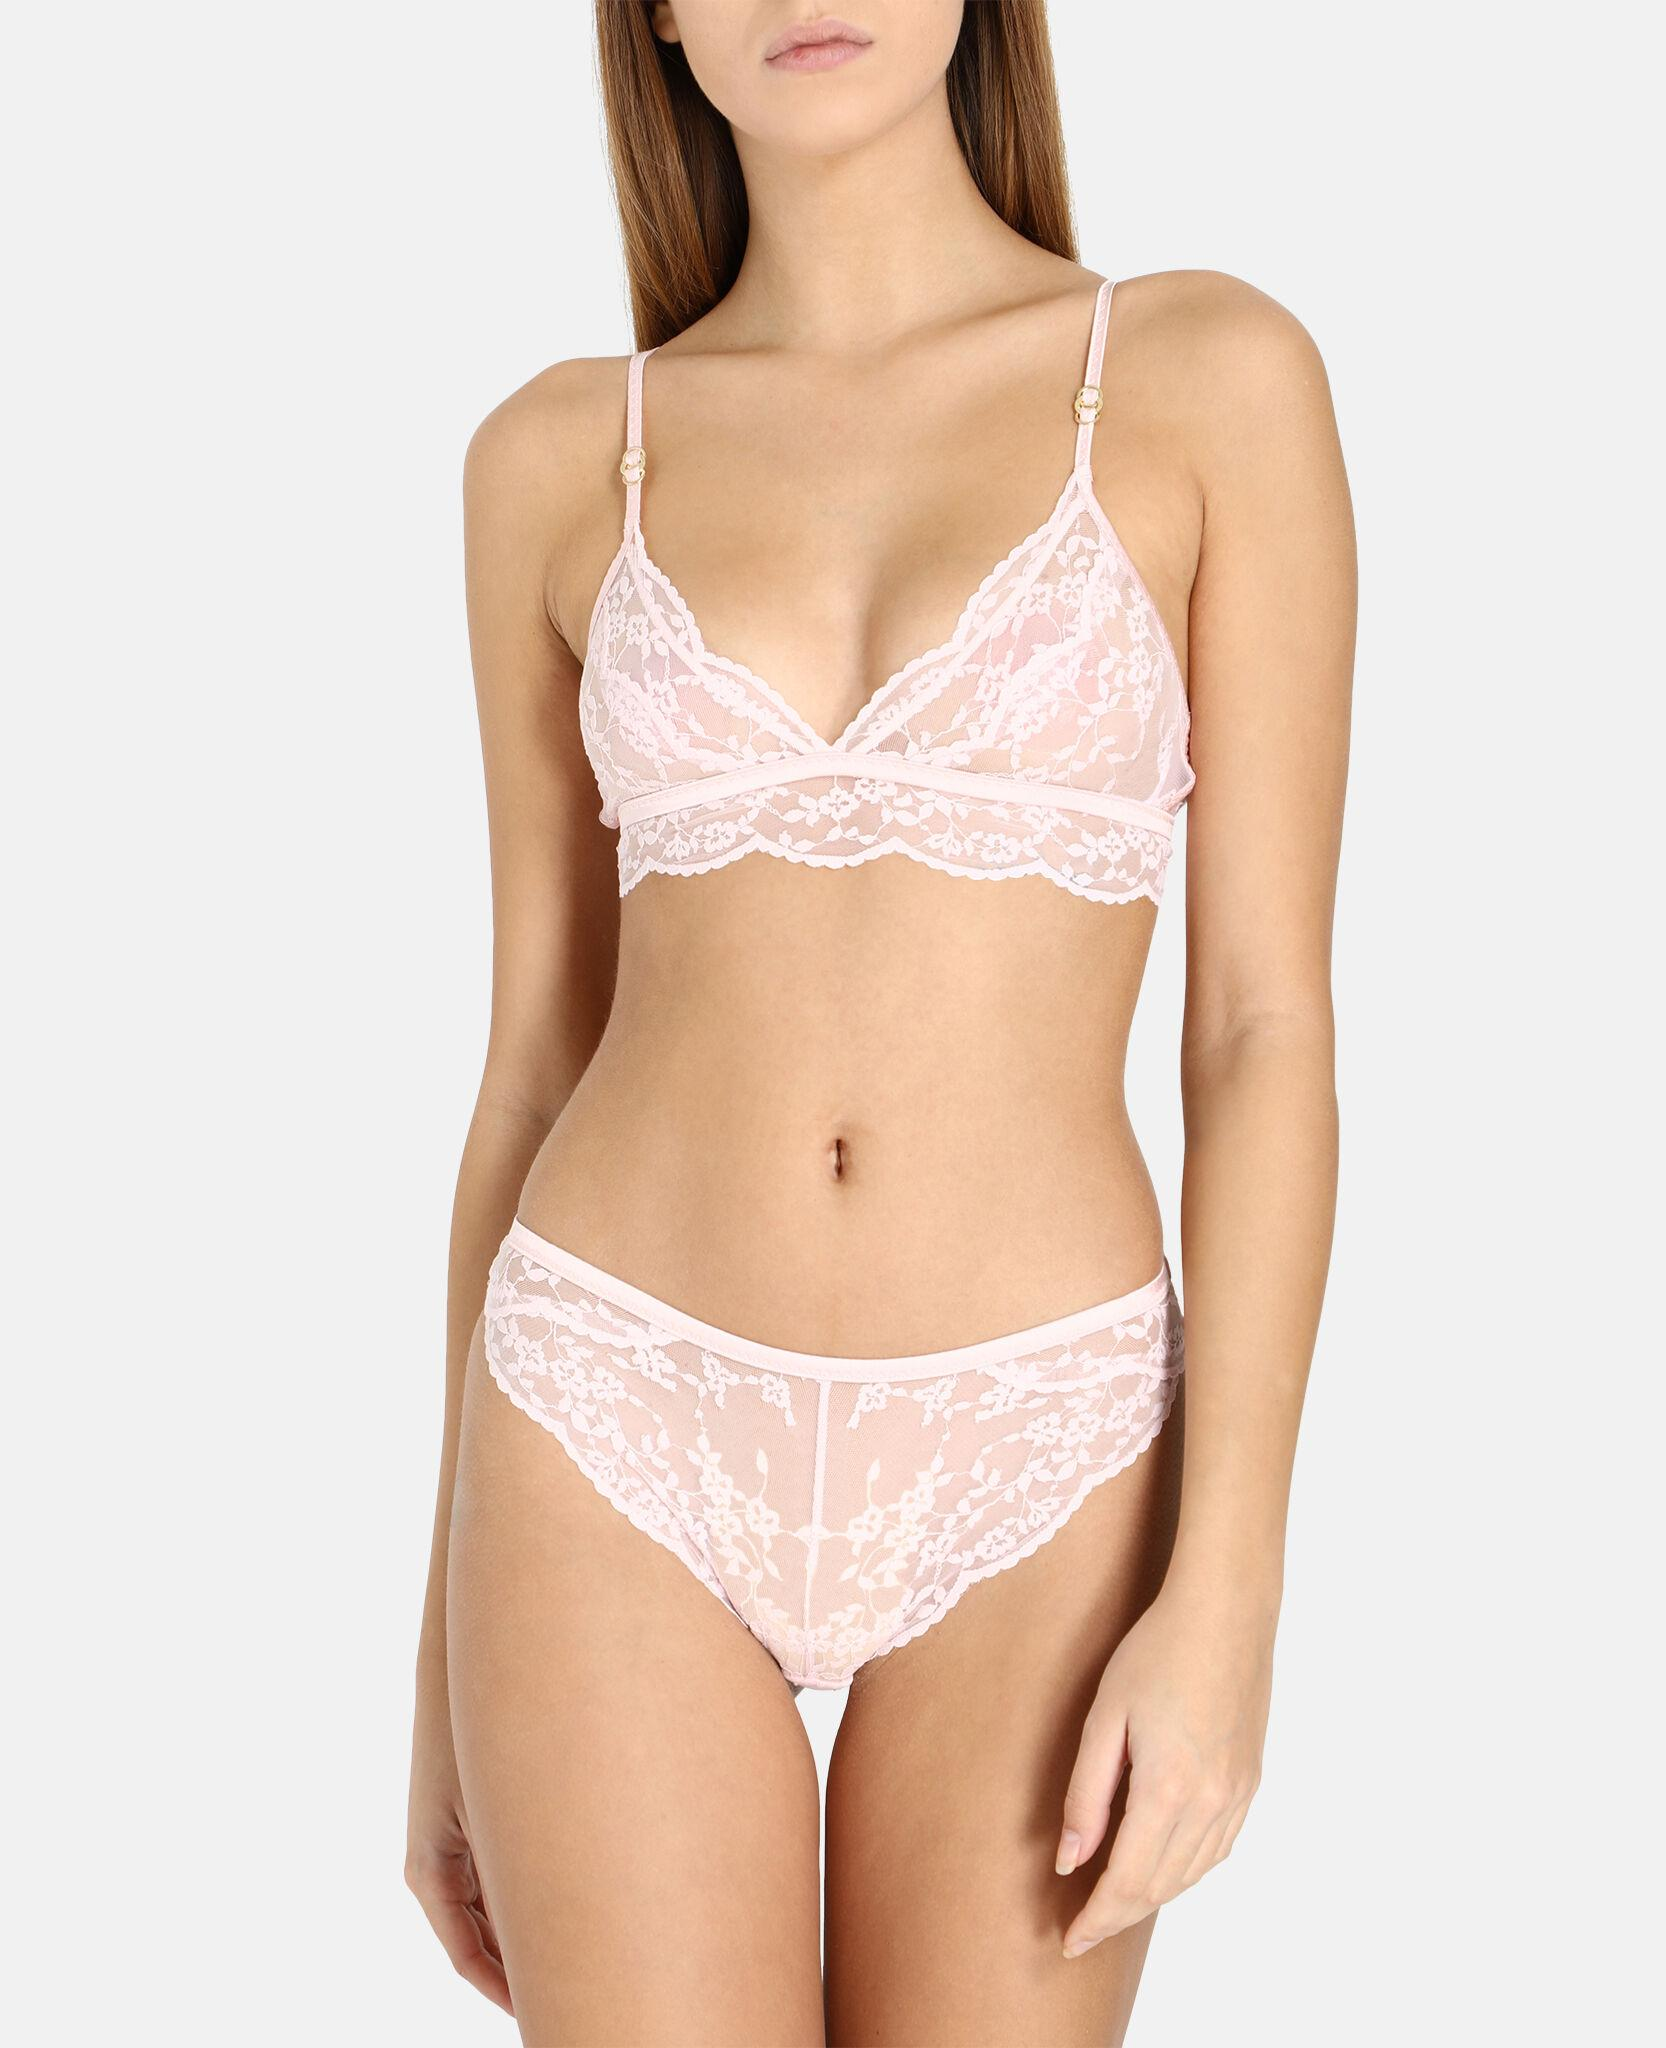 Clementine Glancing Soft Cup Bra